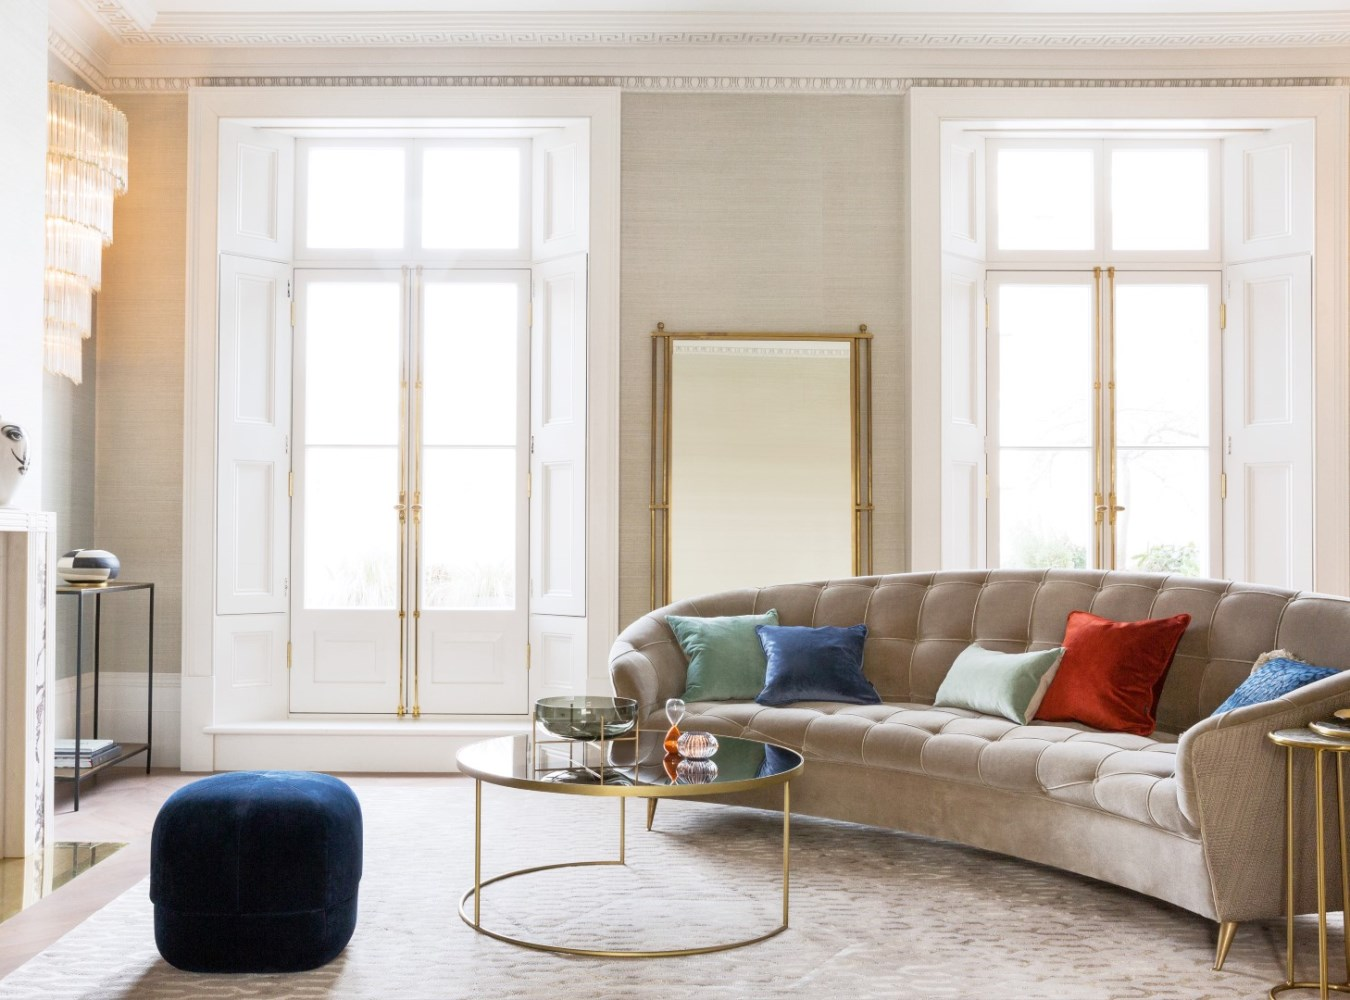 15 Top Living Room Design Ideas The Best Styles For Your